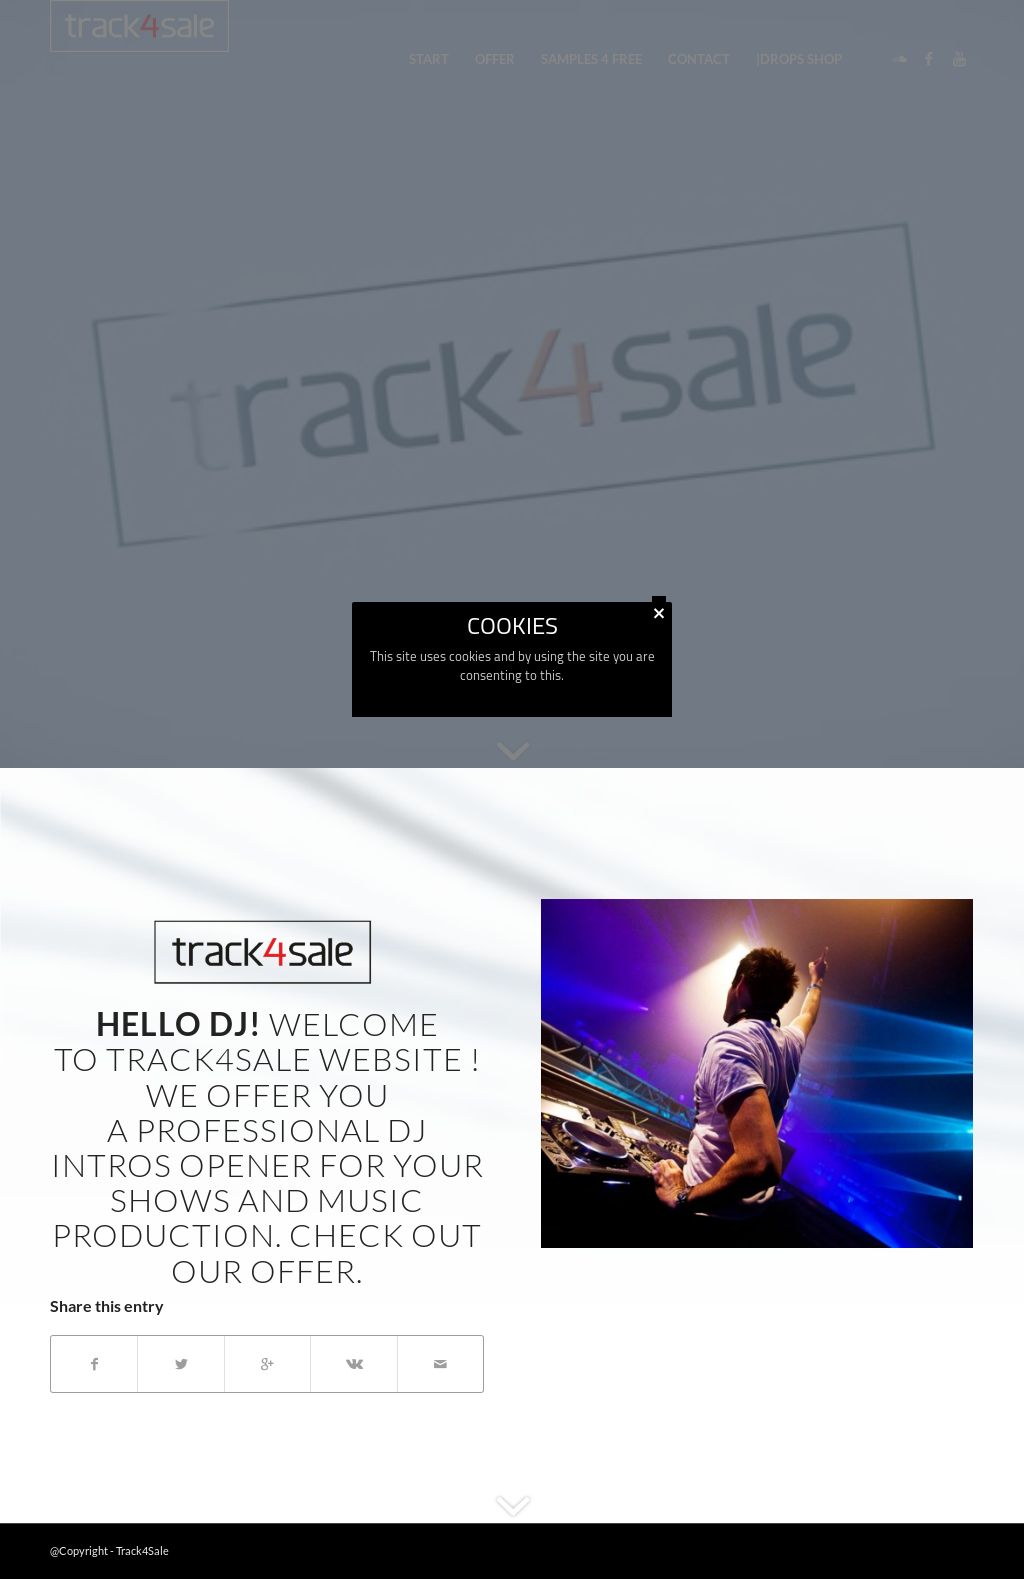 Track4sale Competitors, Revenue and Employees - Owler